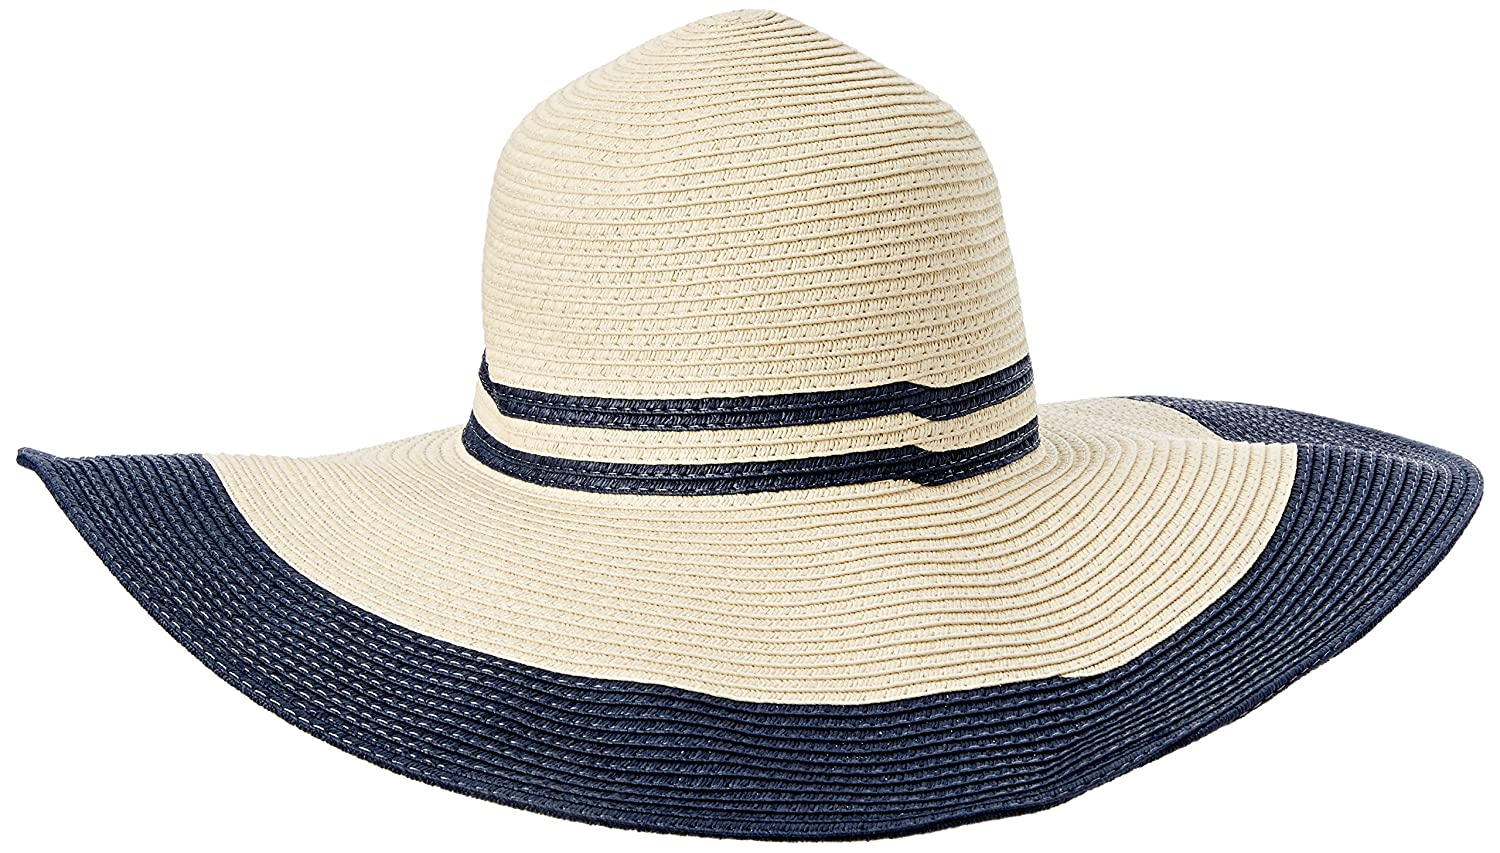 18ddbf04 Joules Women's Mandy Wide Brimmed Sun Hat, French Navy One Size at Amazon  Women's Clothing store: